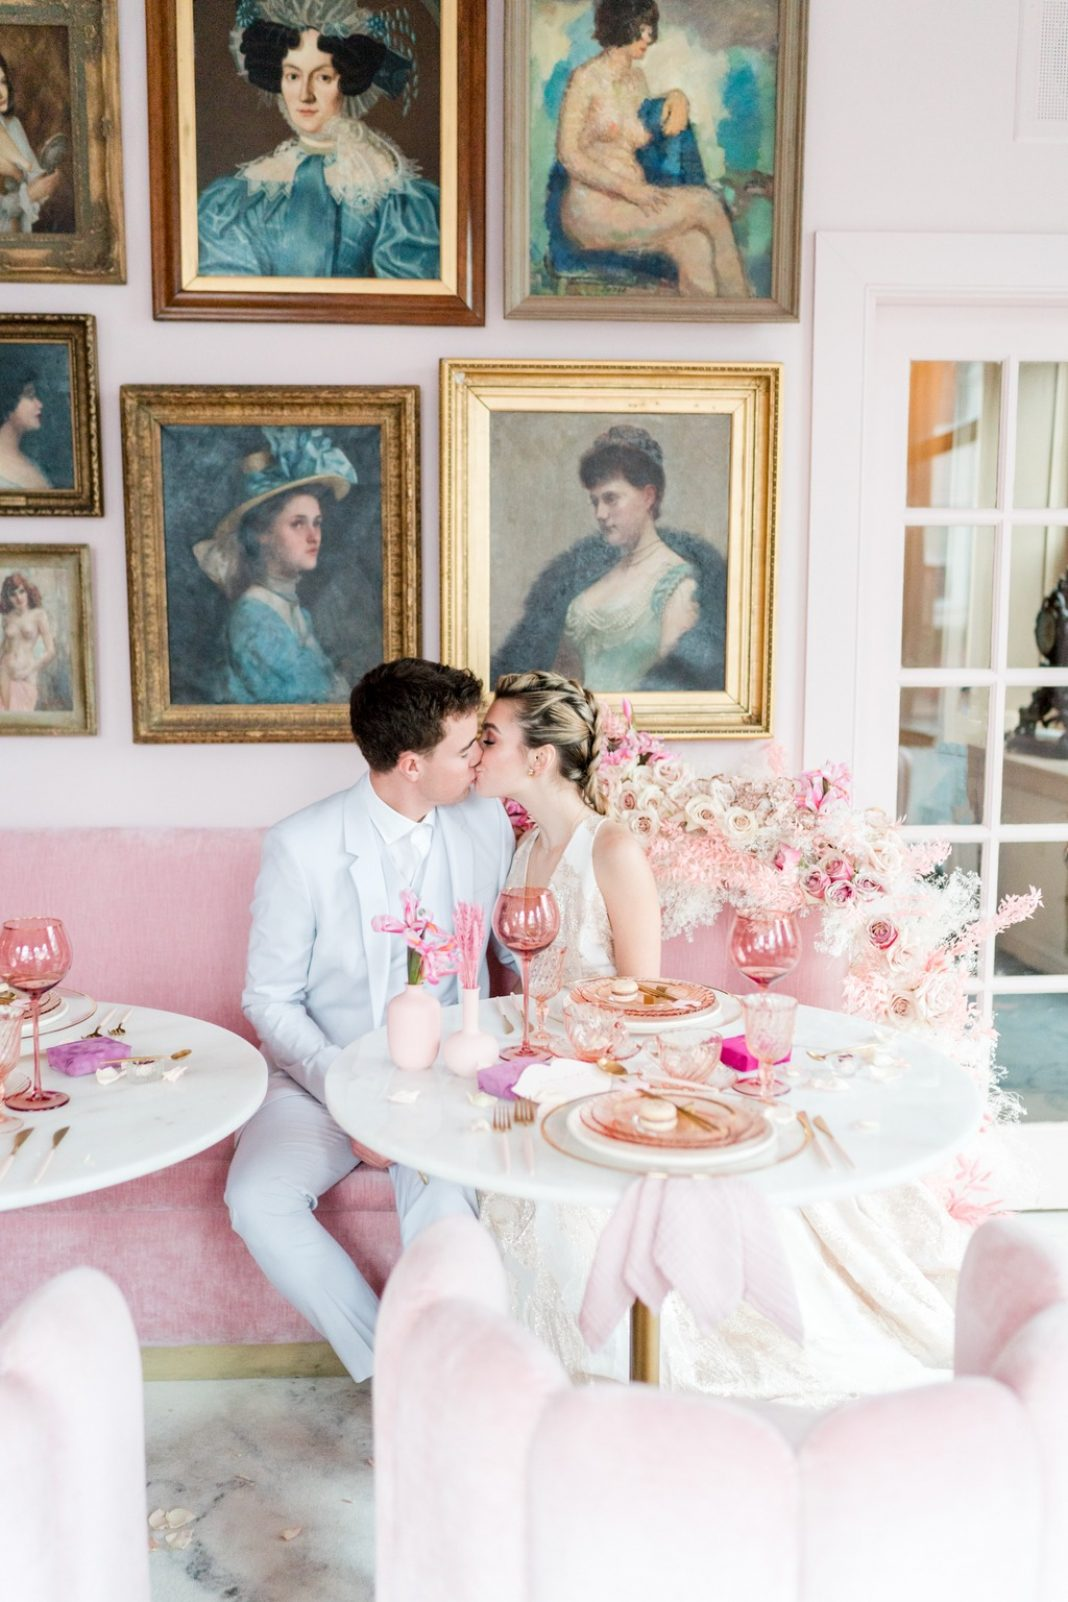 This Valentine's Day Wedding Inspiration Will Have You Tickled Pink! ⋆ Ruffled